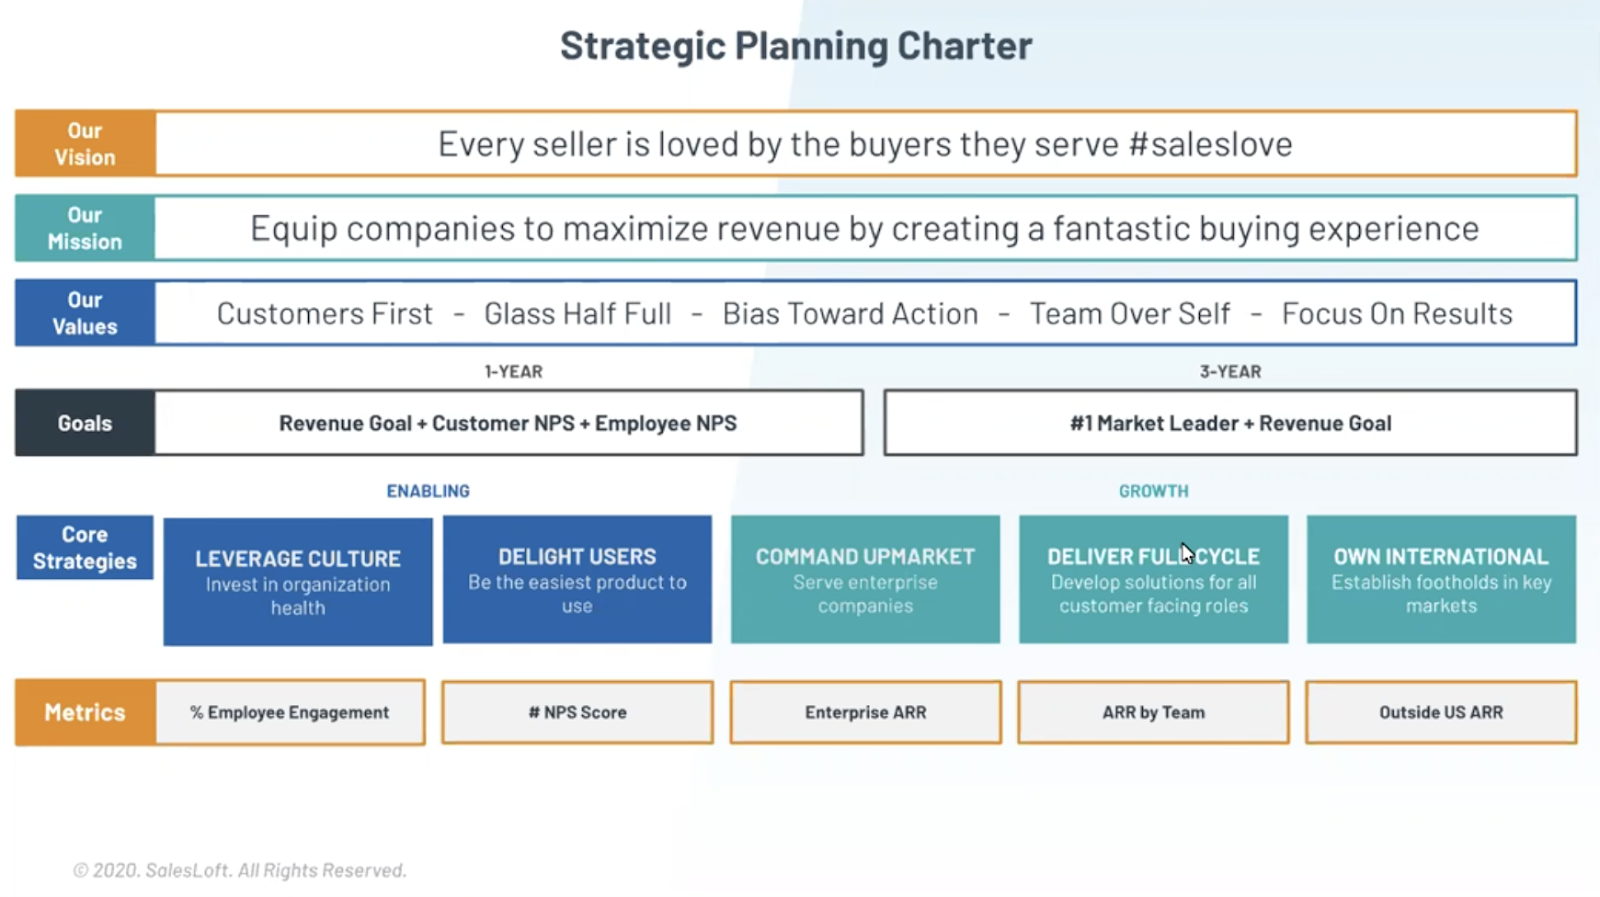 Having a strategic plan is so important to know where you're going and how you're going to get there.